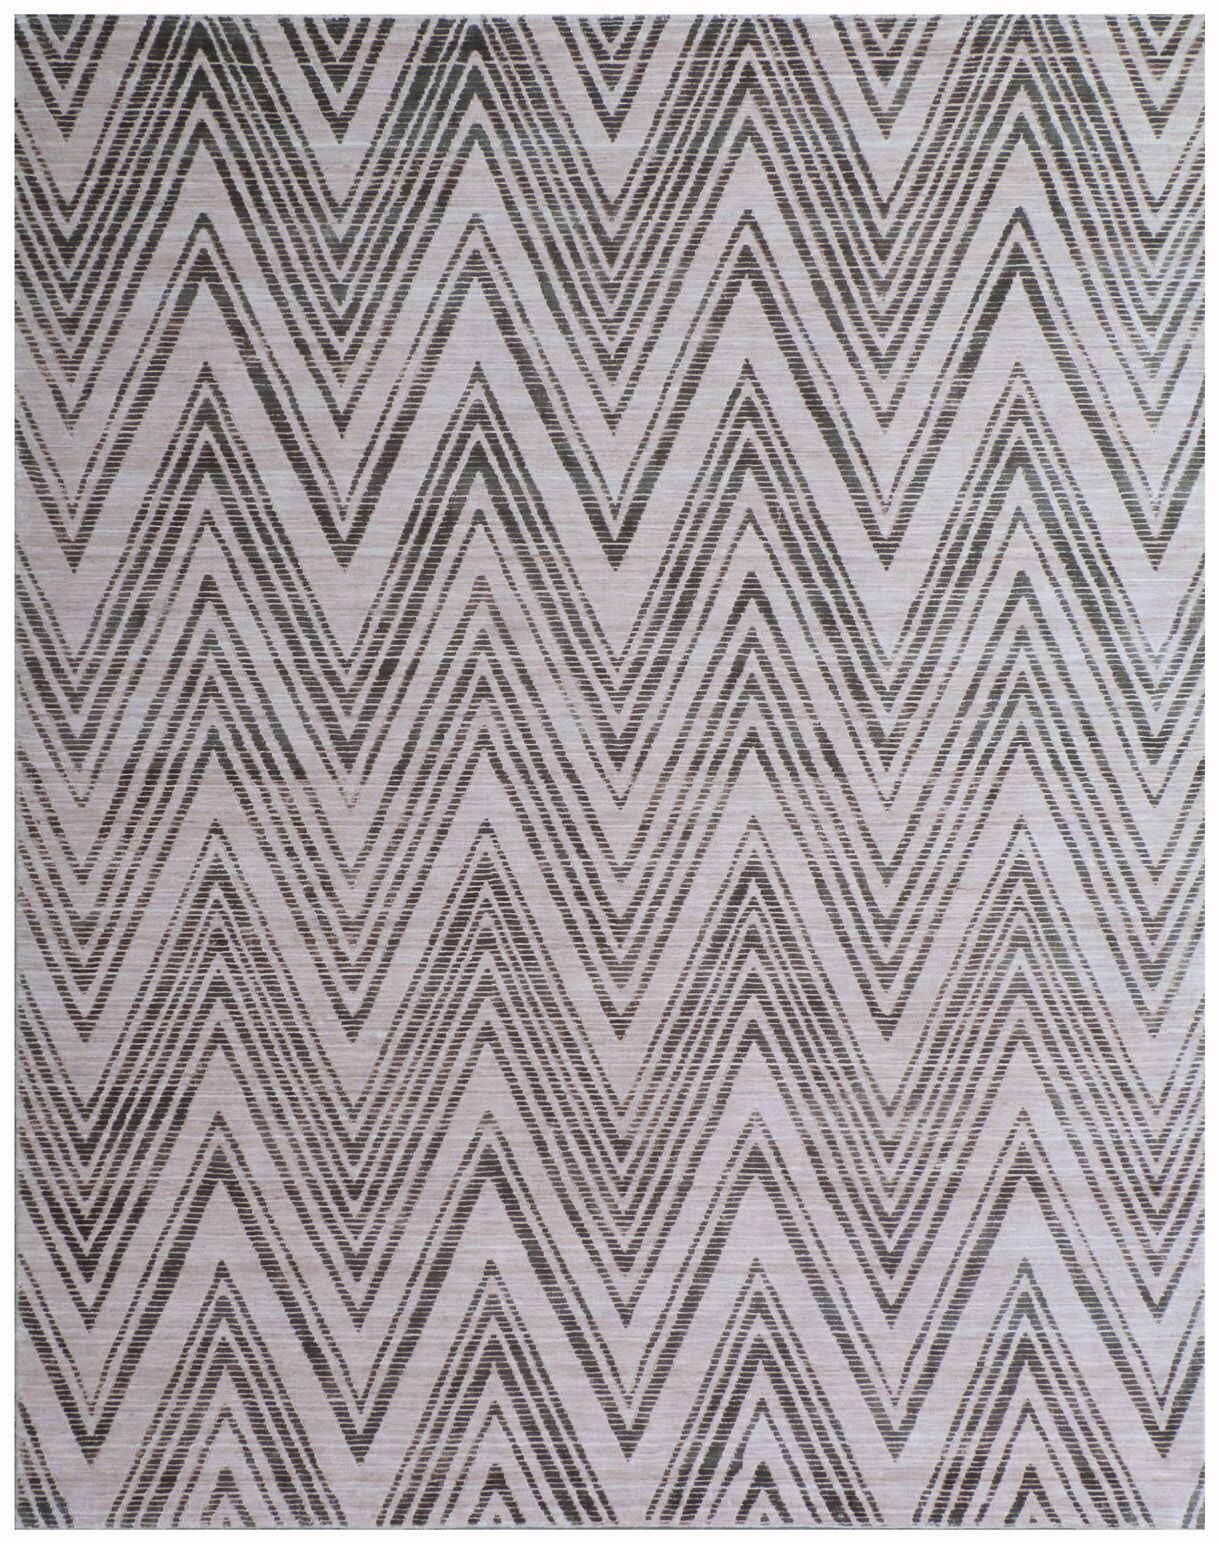 Reflections Hand-Woven Gray/Black Area Rug Rug Size: Rectangle 8' x 10'